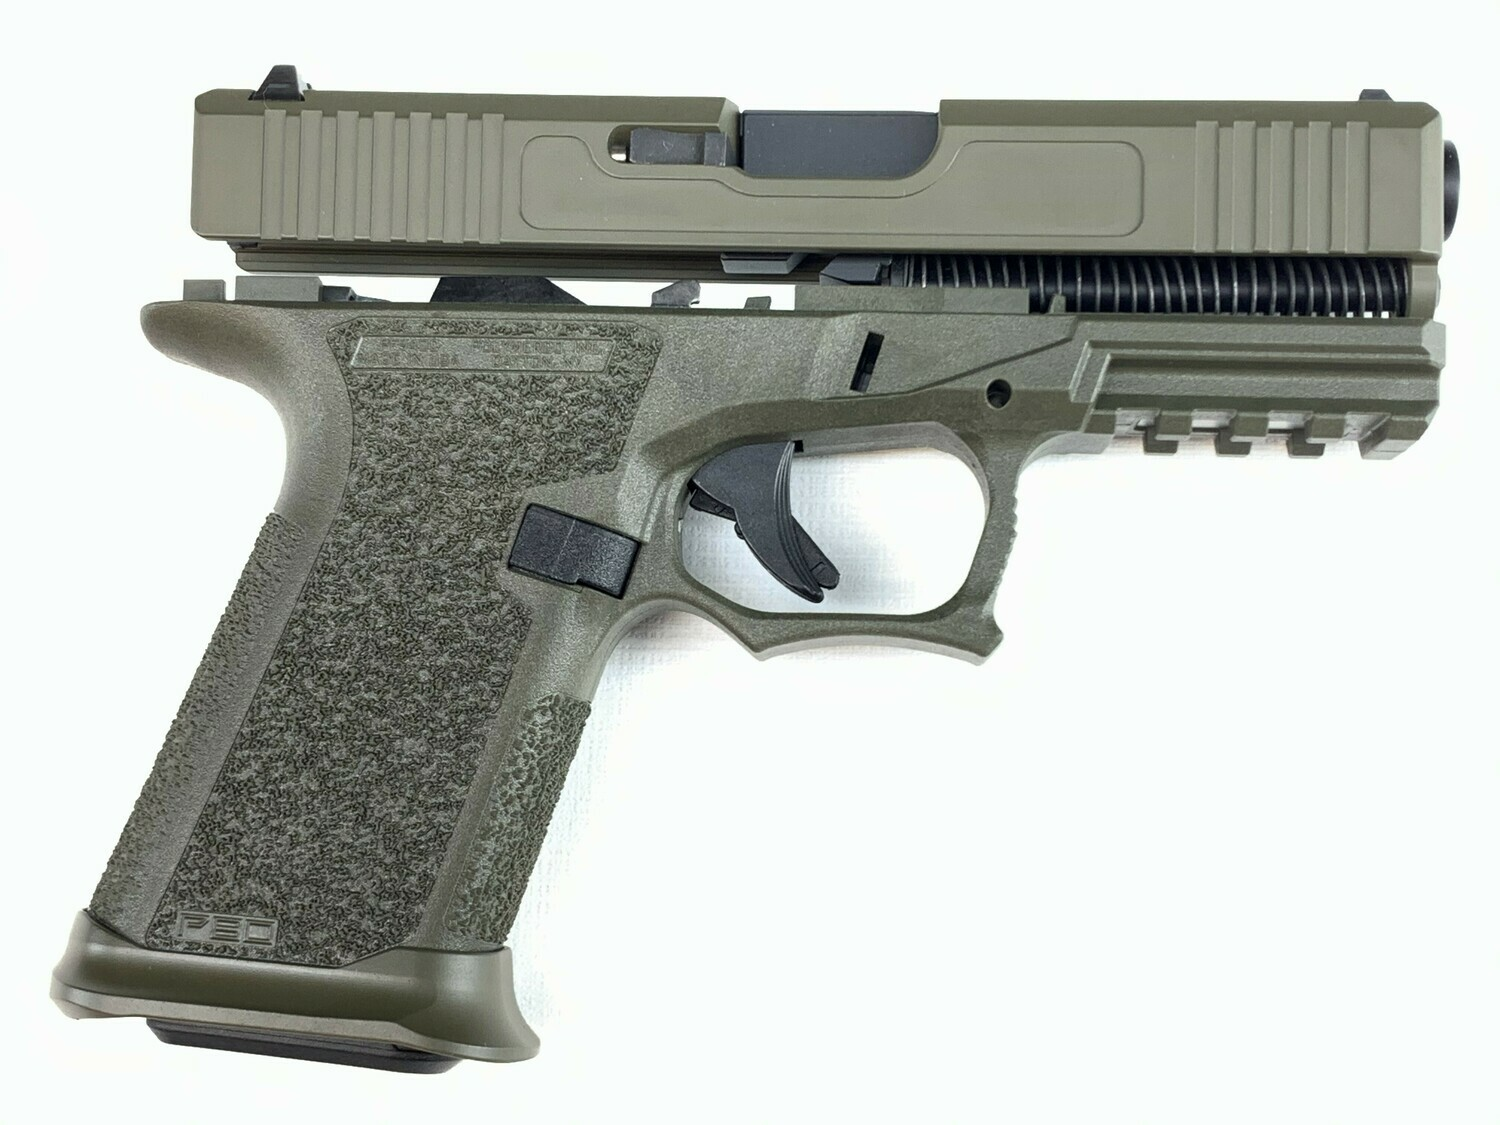 Patriot G19 80% Pistol Build Kit 9mm - Polymer80 PF940C - OD Green - Steel City Arsenal Magwell OD Green